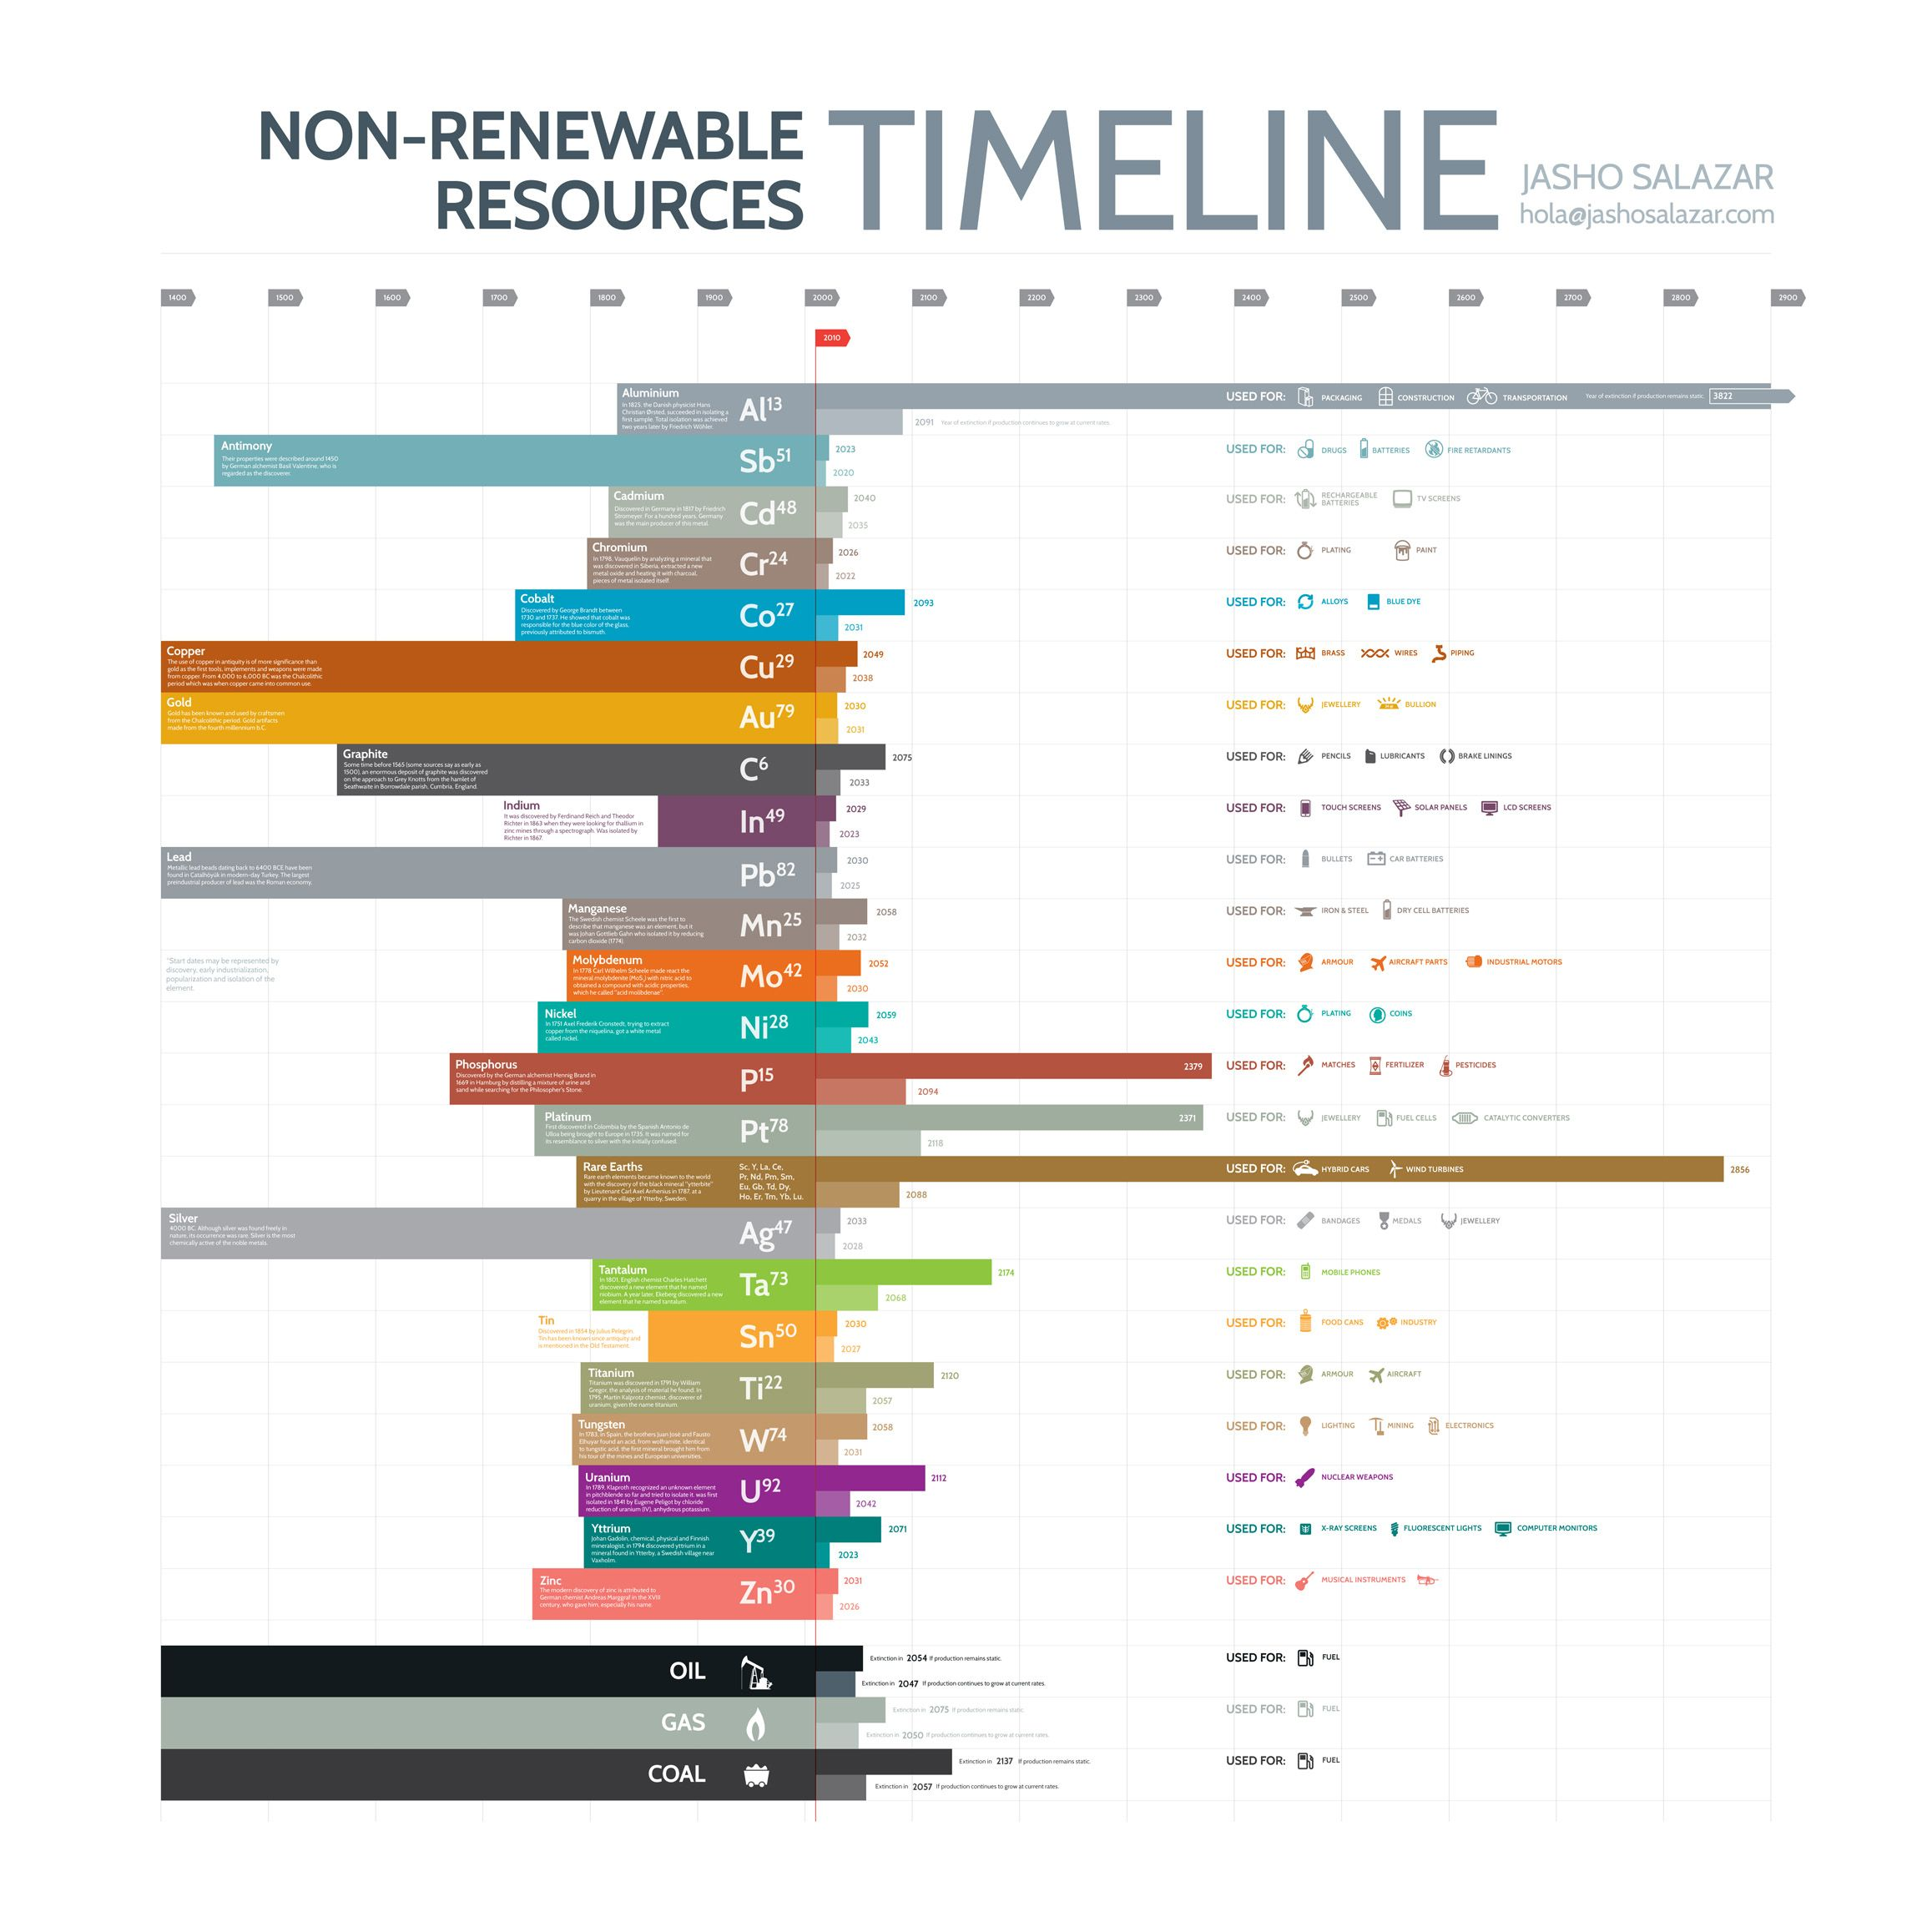 Non Renewable Resources Timeline Examples Of Non Renewable